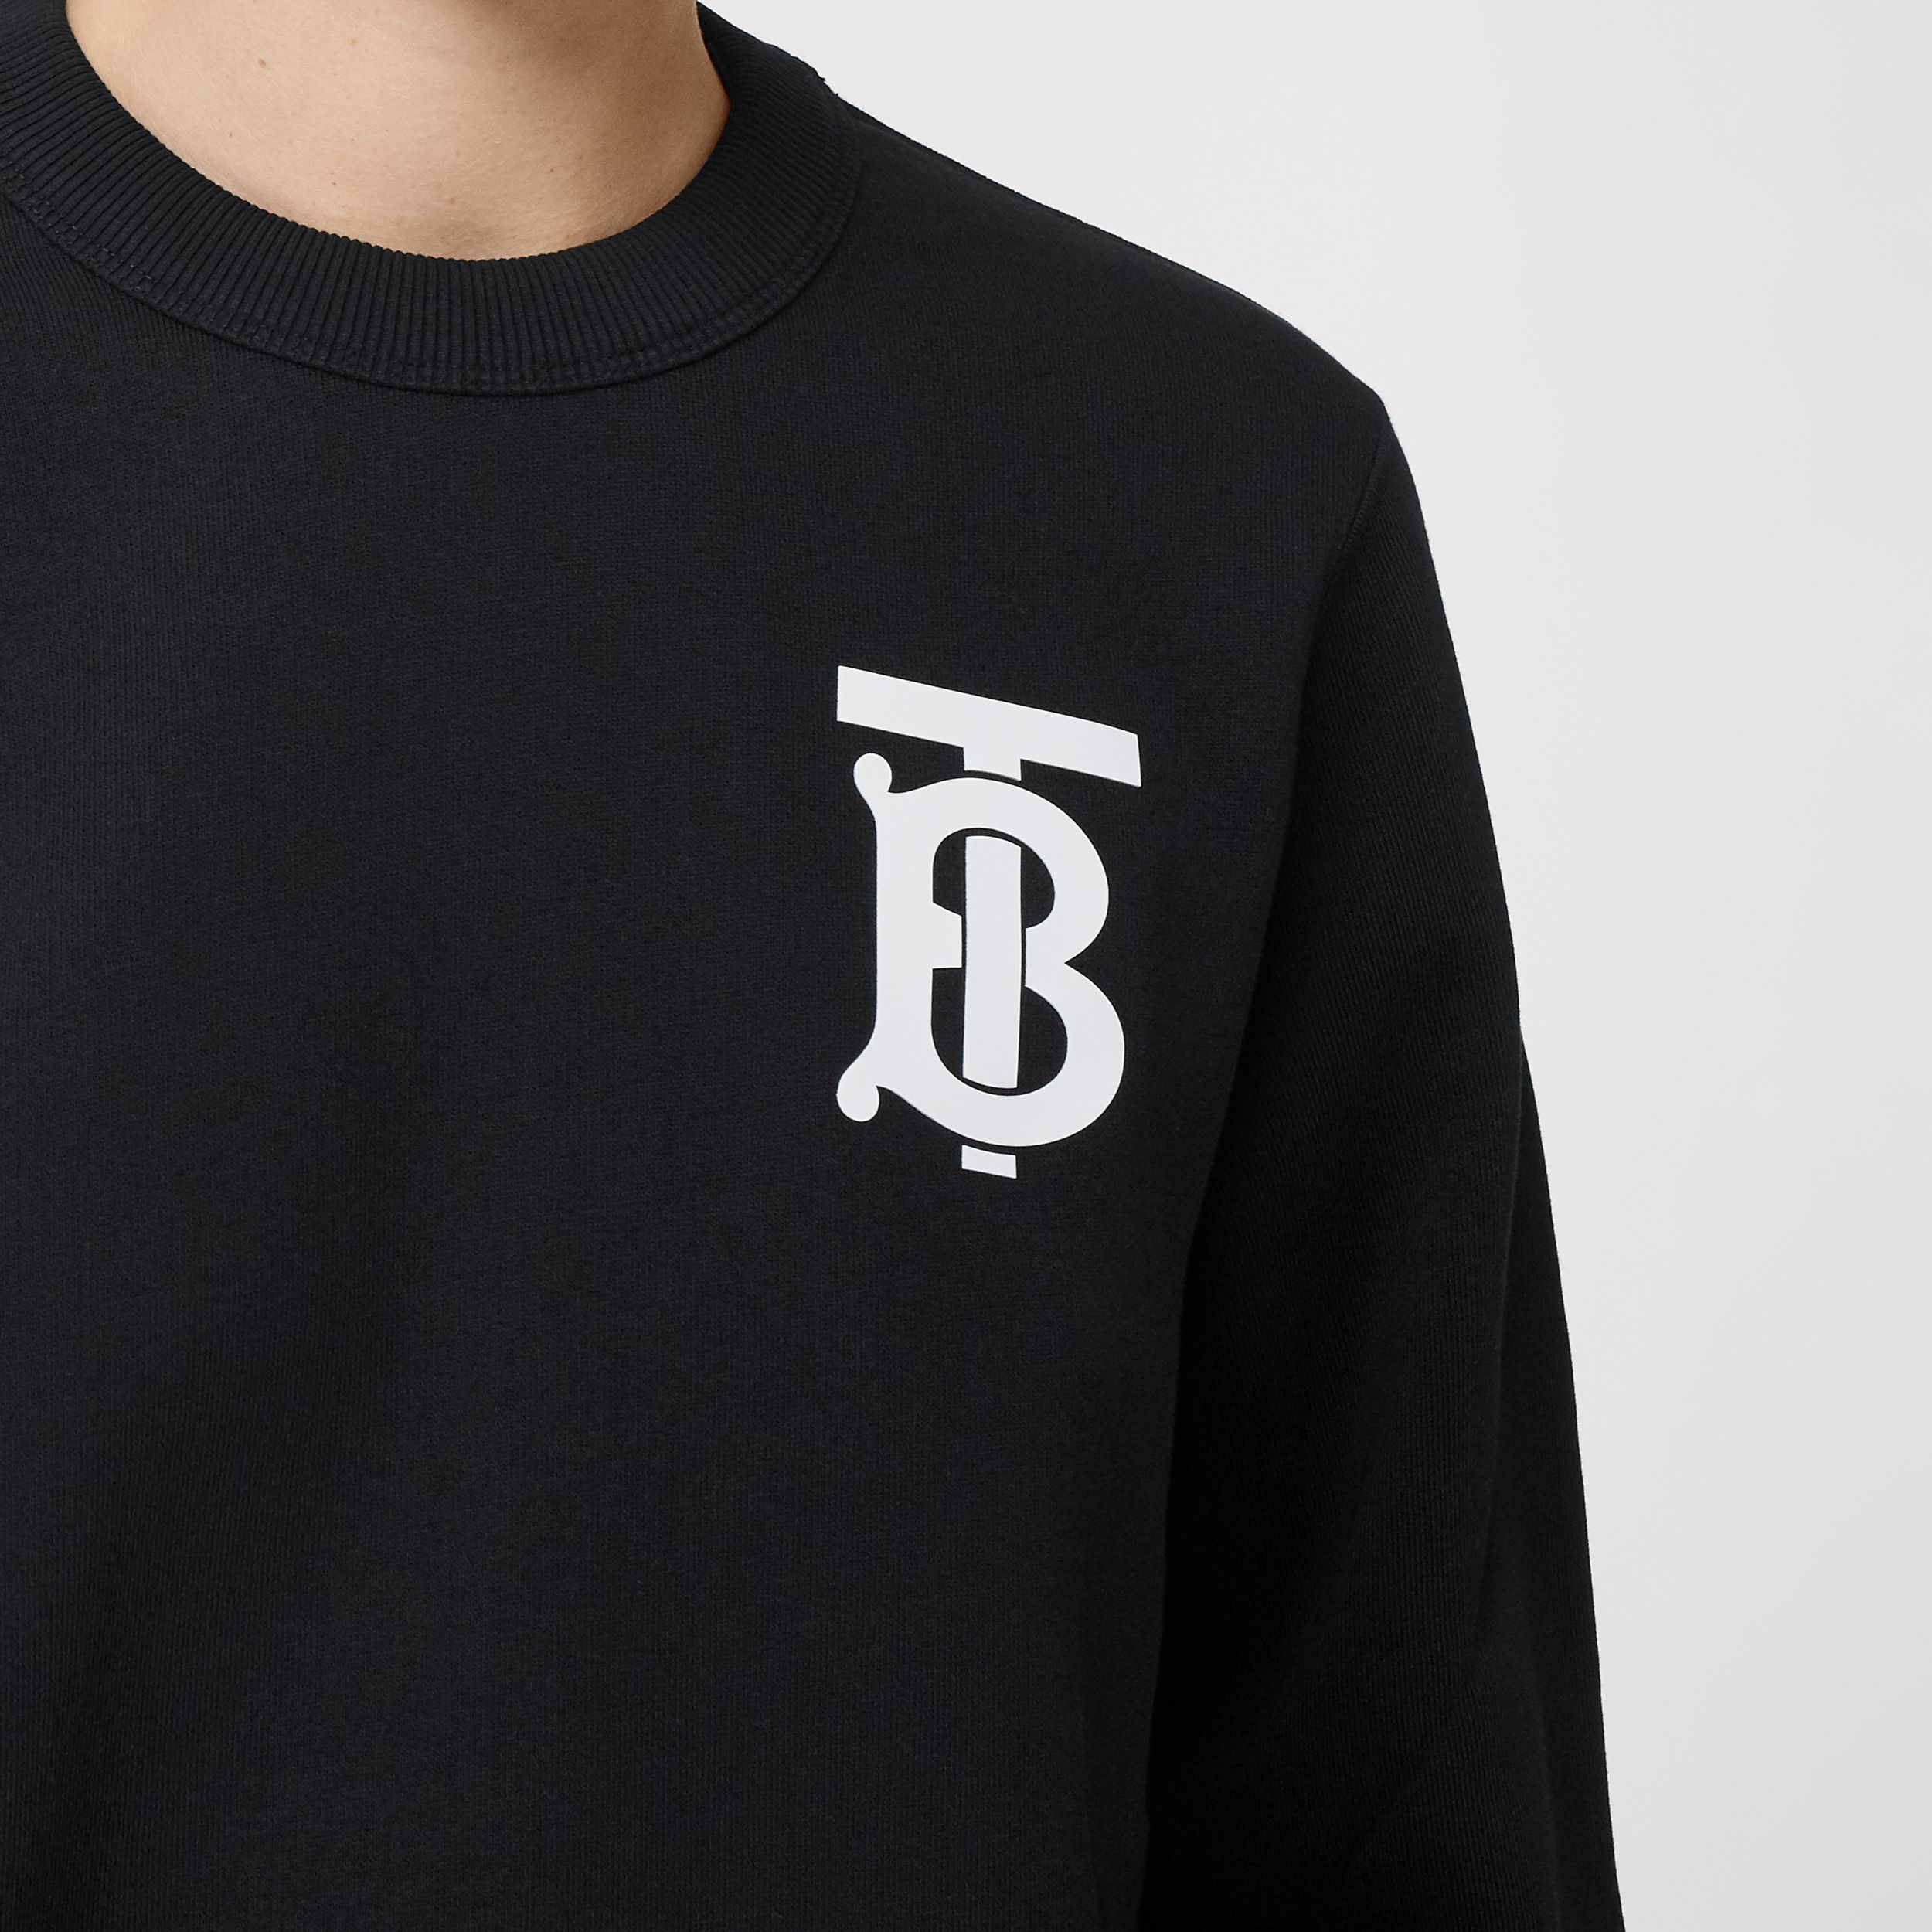 Monogram Motif Cotton Sweatshirt in Black - Women | Burberry Canada - 2